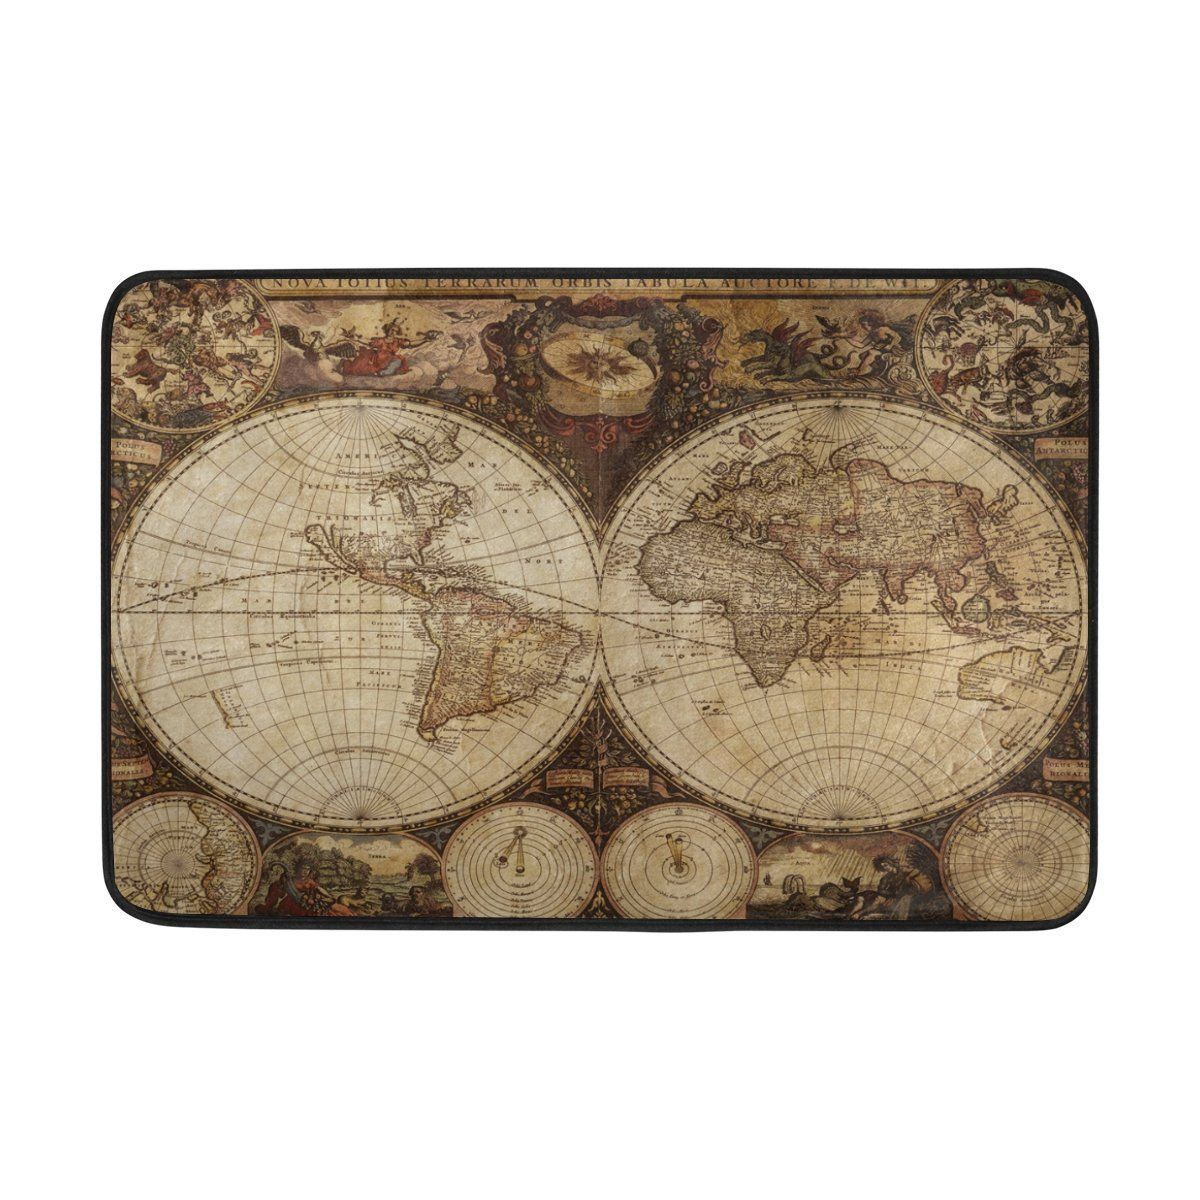 Amazon demonco vintage retro old world map door mat rug map amazon demonco vintage retro old world map door mat rug map of gumiabroncs Image collections